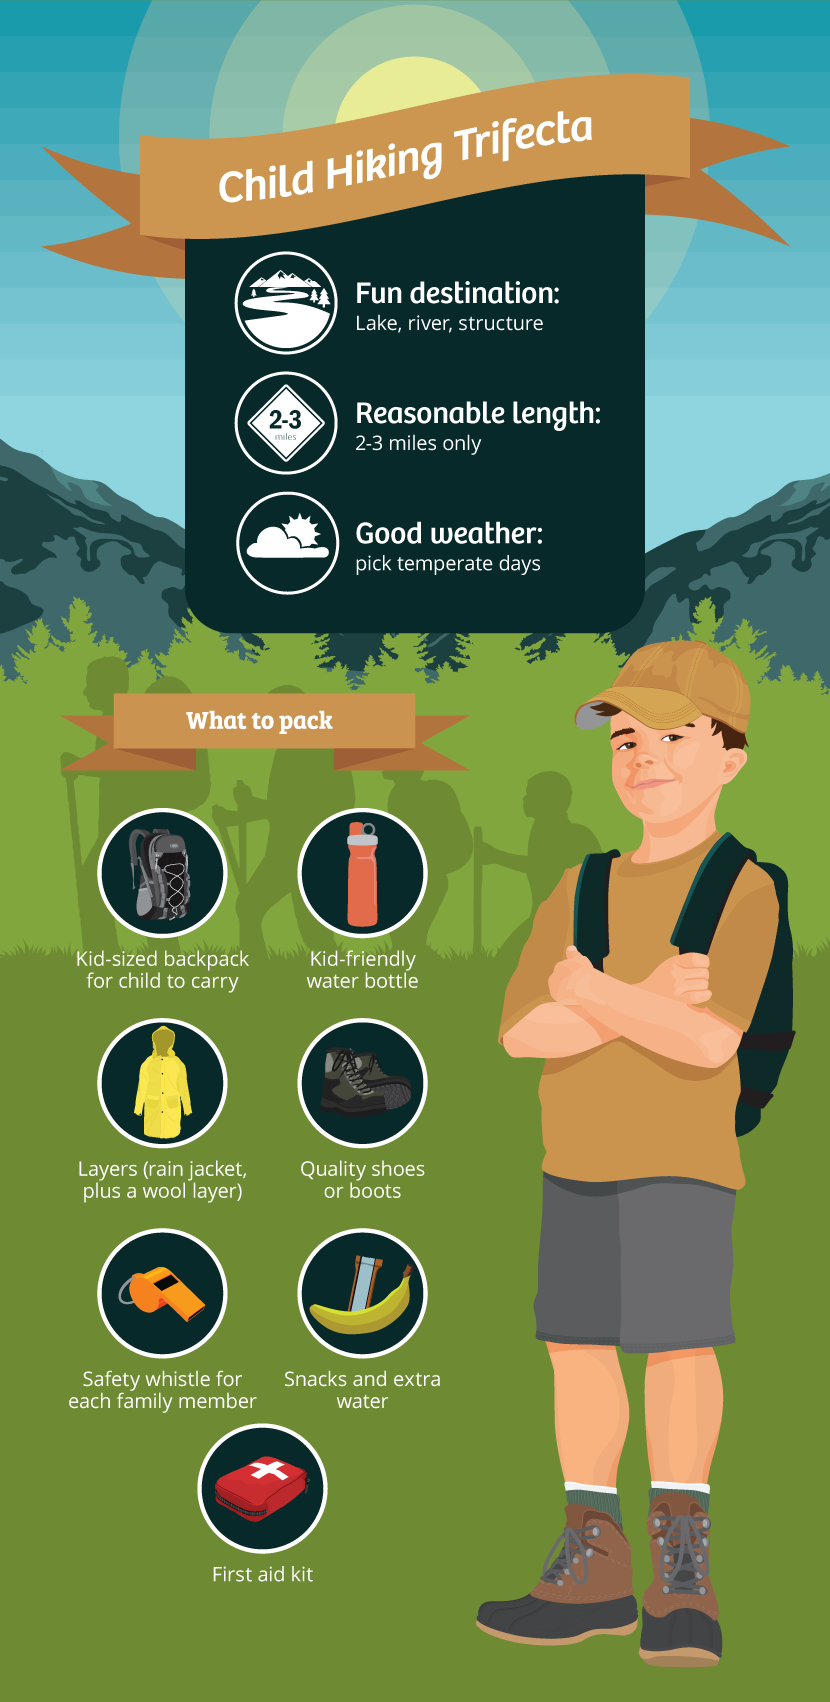 Child Hiking Trifecta - The Benefits of Hiking with Kids